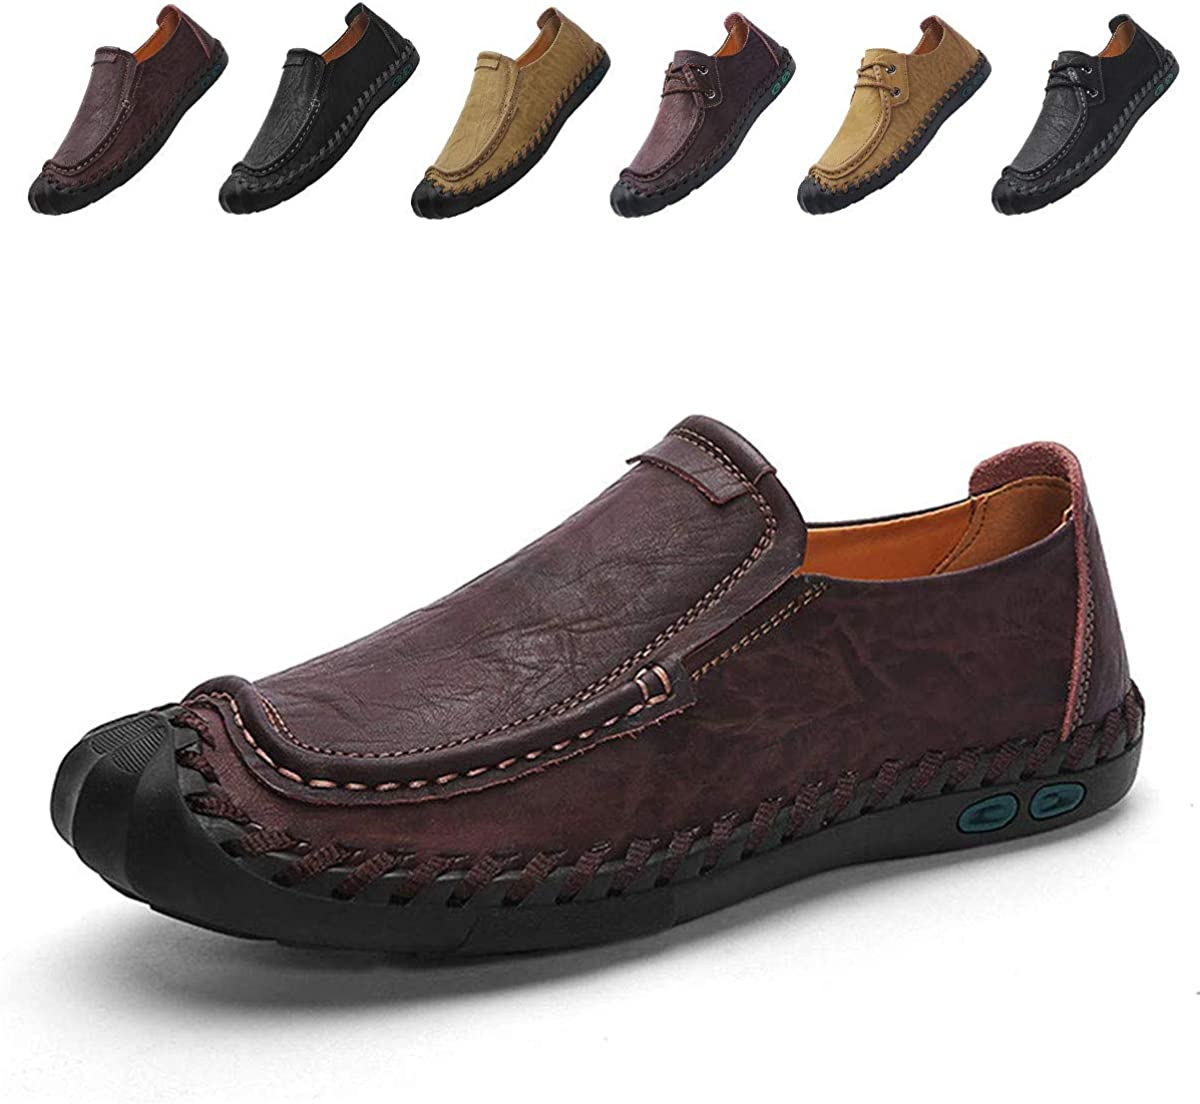 Elegdy Mens Loafers Shoes Slip-on Soft Sole Lined Oxfords Large Dress Shoes